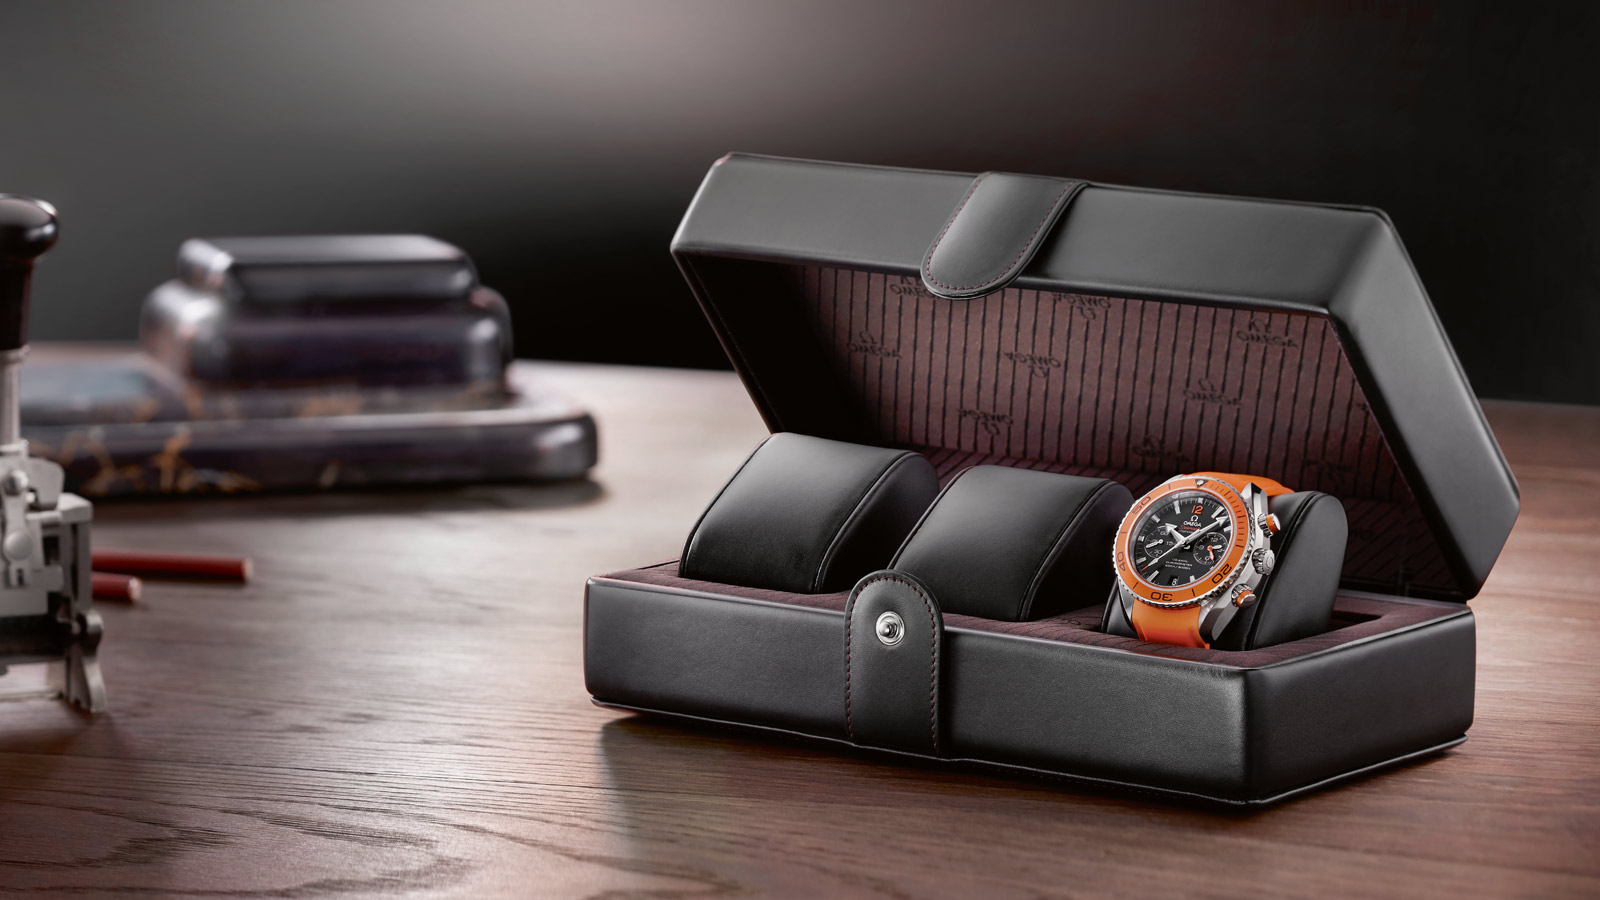 Omega fine leather watch box, Omega accessories, Omega fine leather goods